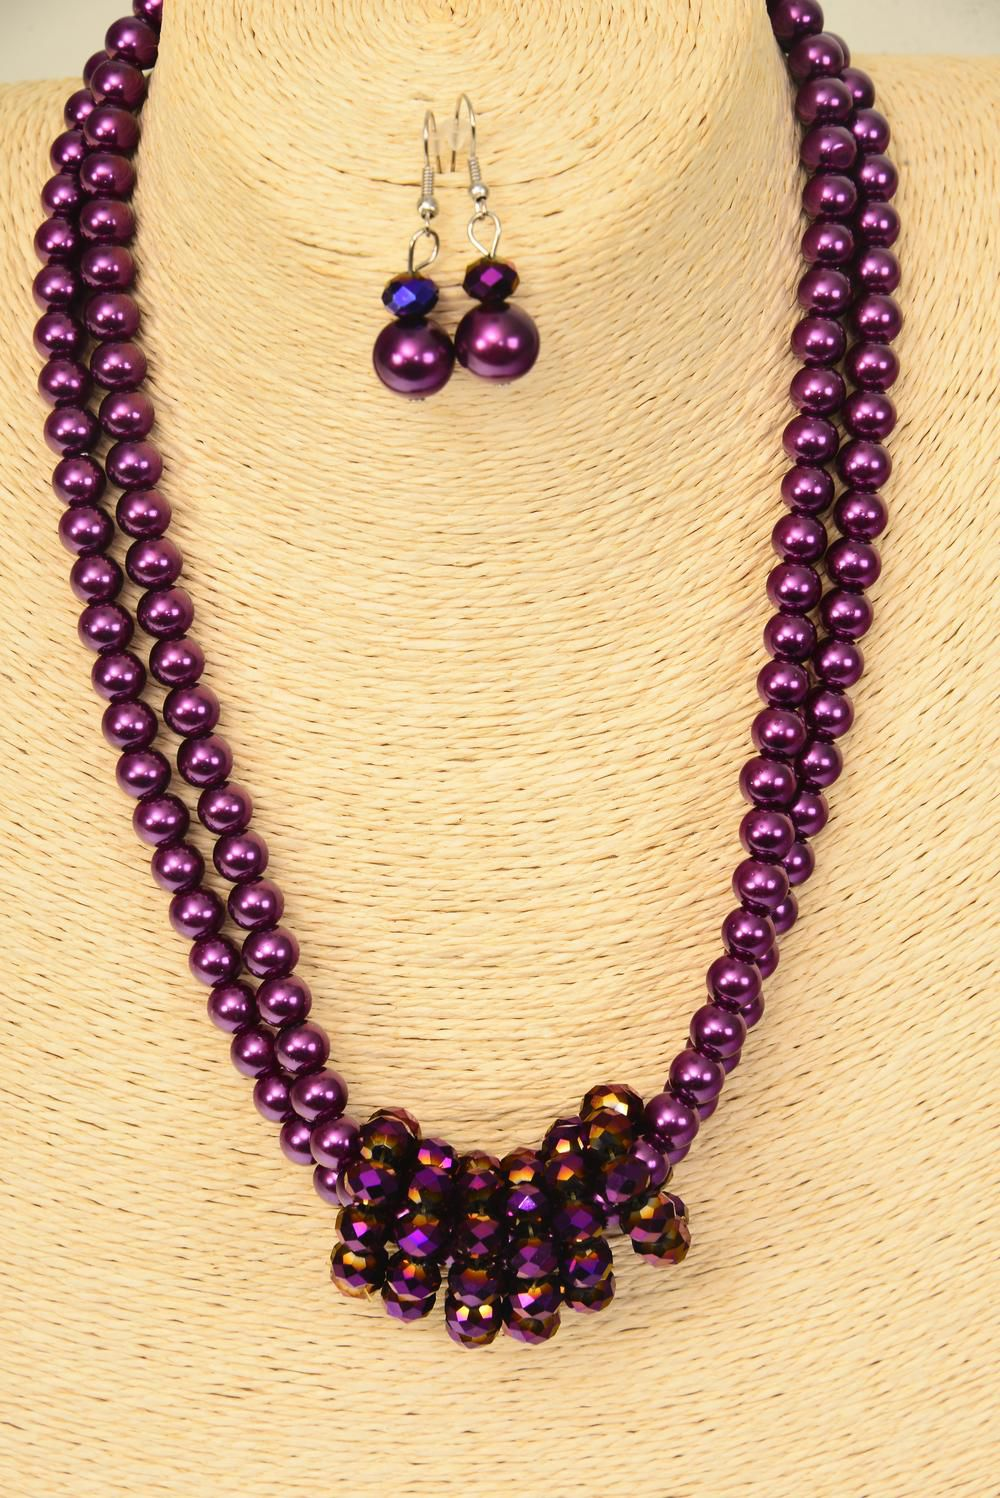 "Necklace Sets 2 Line Purple Glass Pearl Purple Glass Crystals/Sets **Purple** Size-17"" Extension Chain,Hang tag & Opp Bag & UPC Code"